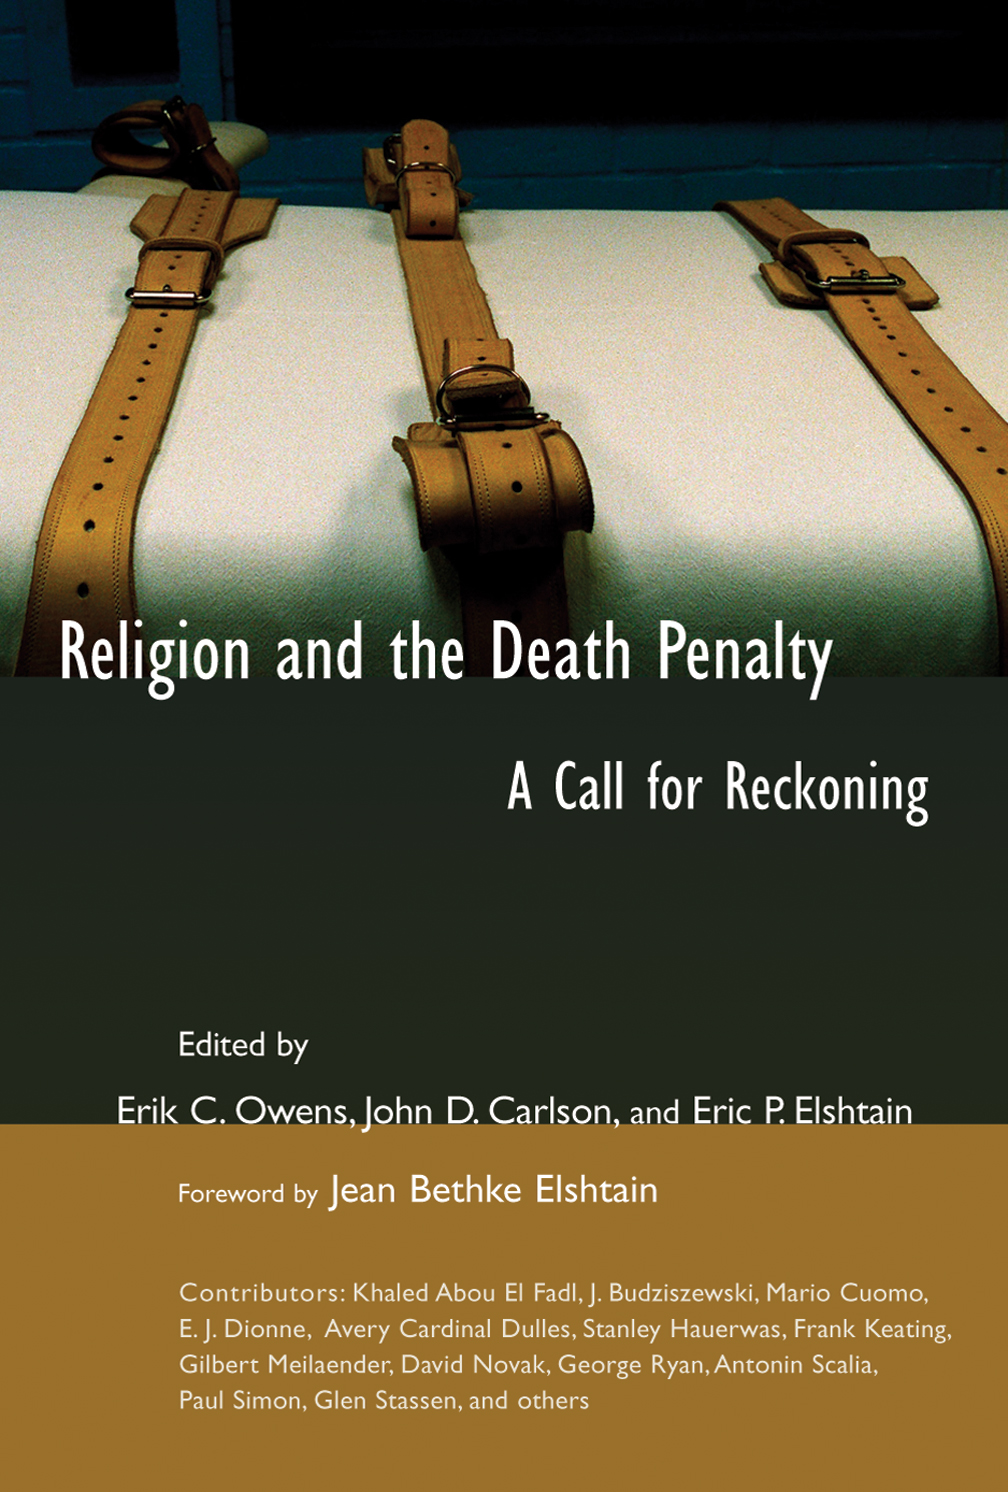 High School Senior Essay Religion And The Death Penalty  John D Carlson Erik Owens Eric P  Elshtain  Eerdmans English Essays For High School Students also Business Strategy Essay Religion And The Death Penalty  John D Carlson Erik Owens Eric P  Yellow Wallpaper Essays